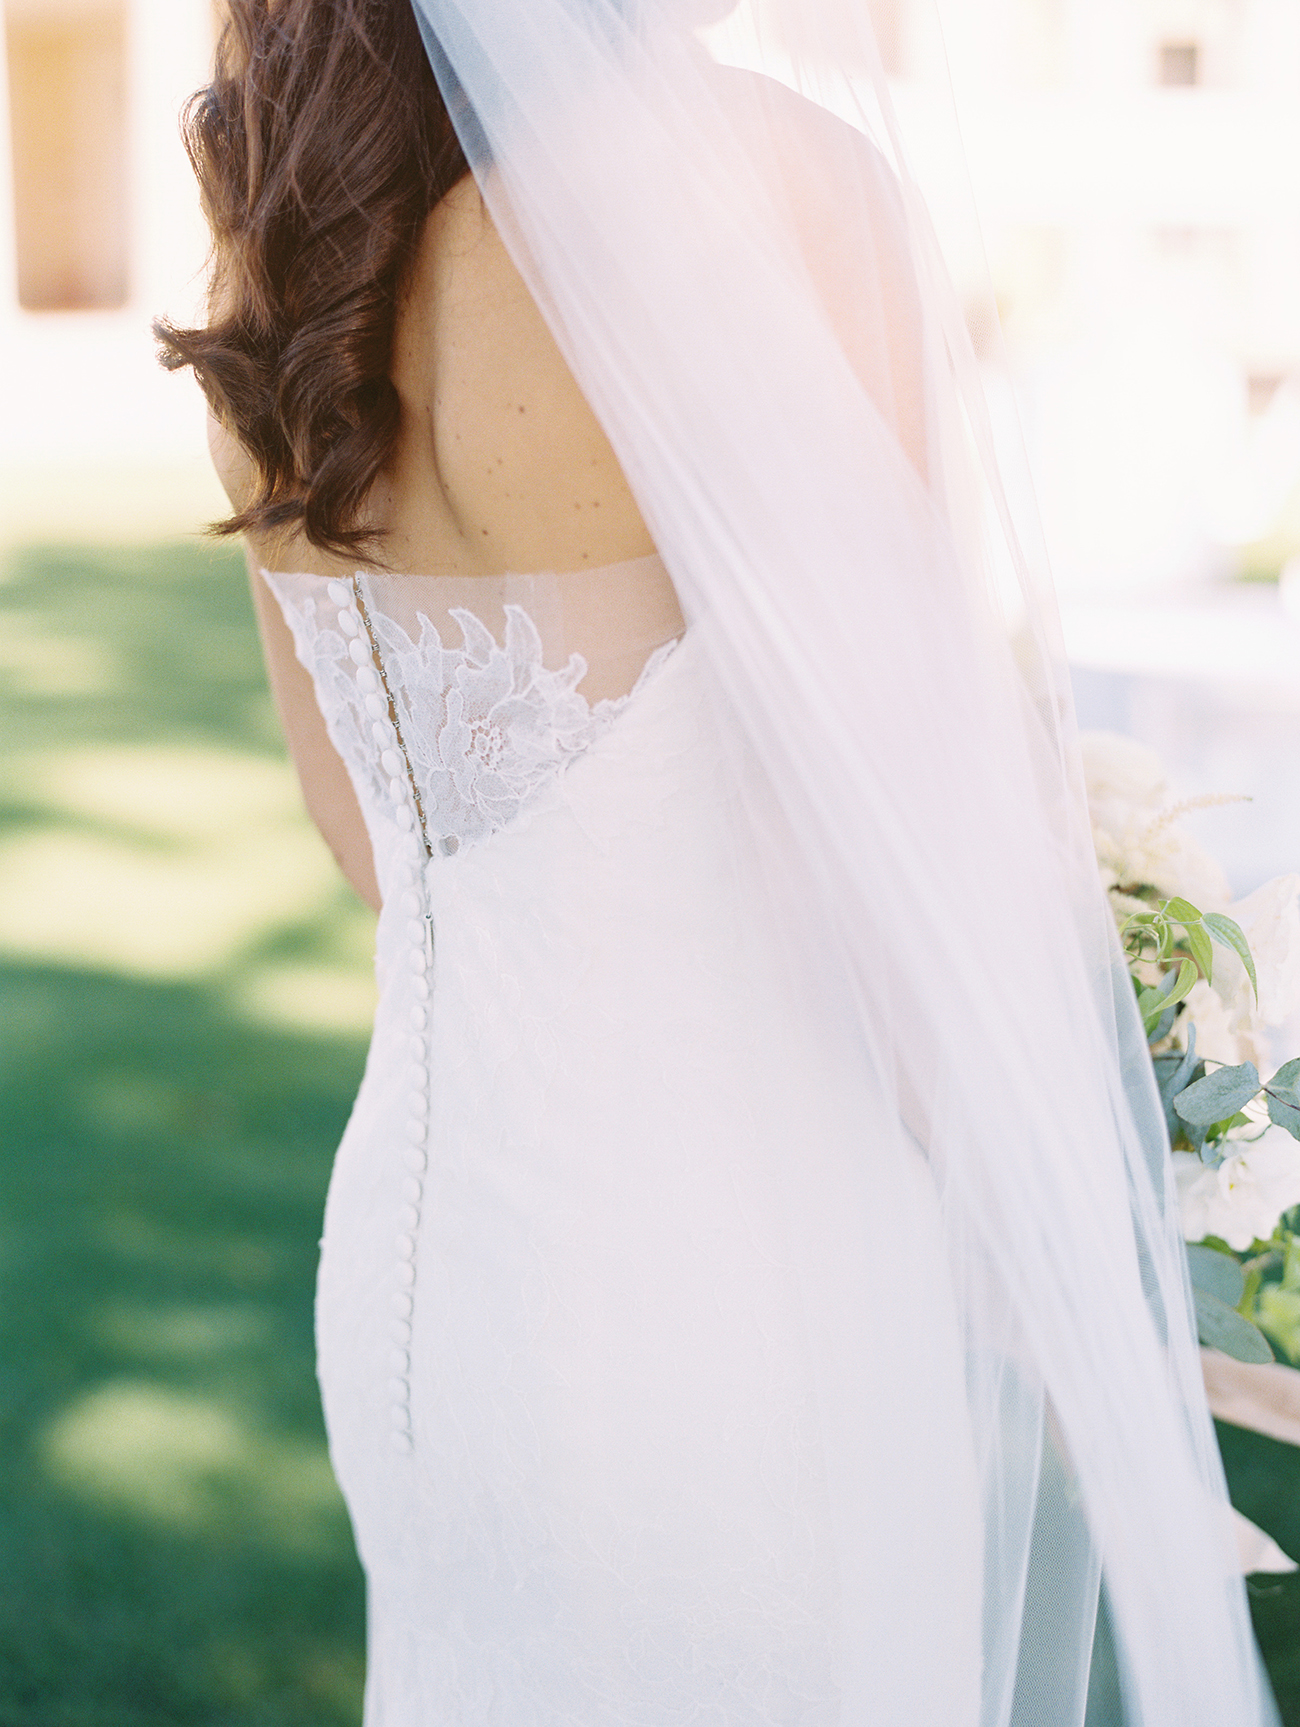 The Most Common Wedding Dress Embellishments, Explained